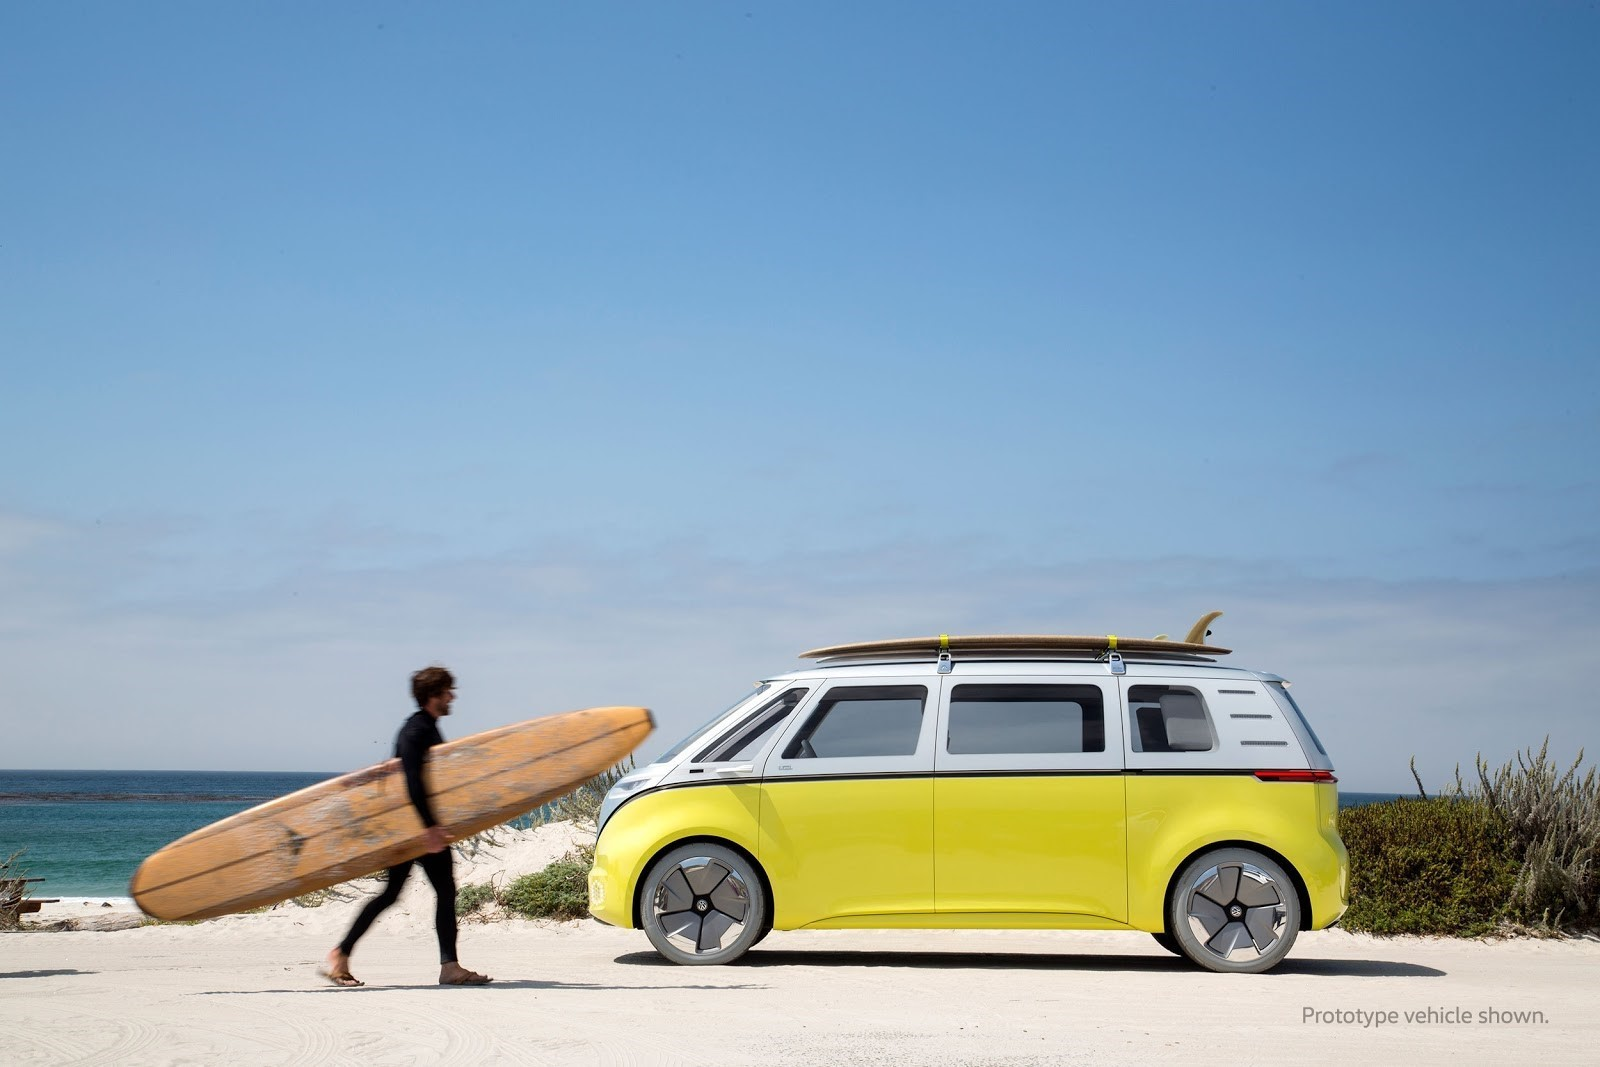 Will The New Electric Campervan Also Become A Symbol Of Freedom Image Volkswagen